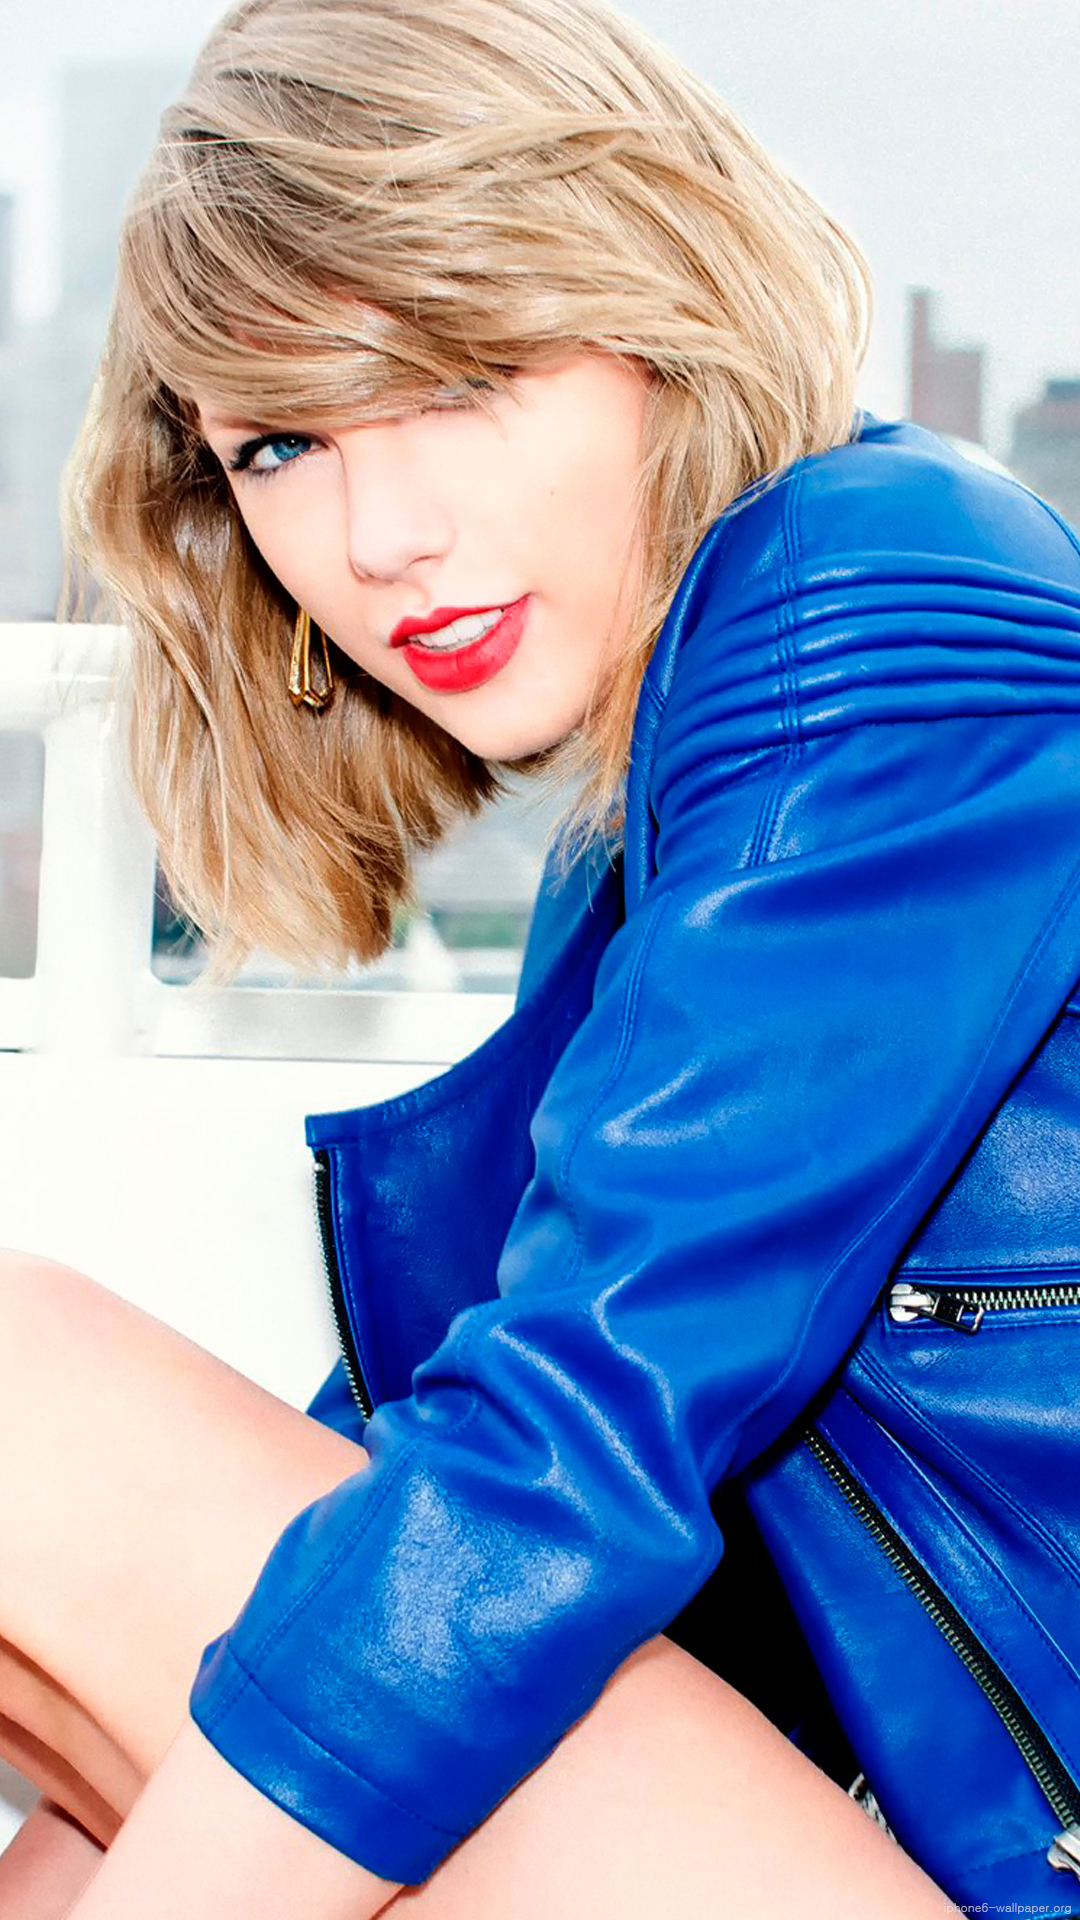 Taylor Swift IPhone 6 Wallpaper Plus 1080p 1080x1920